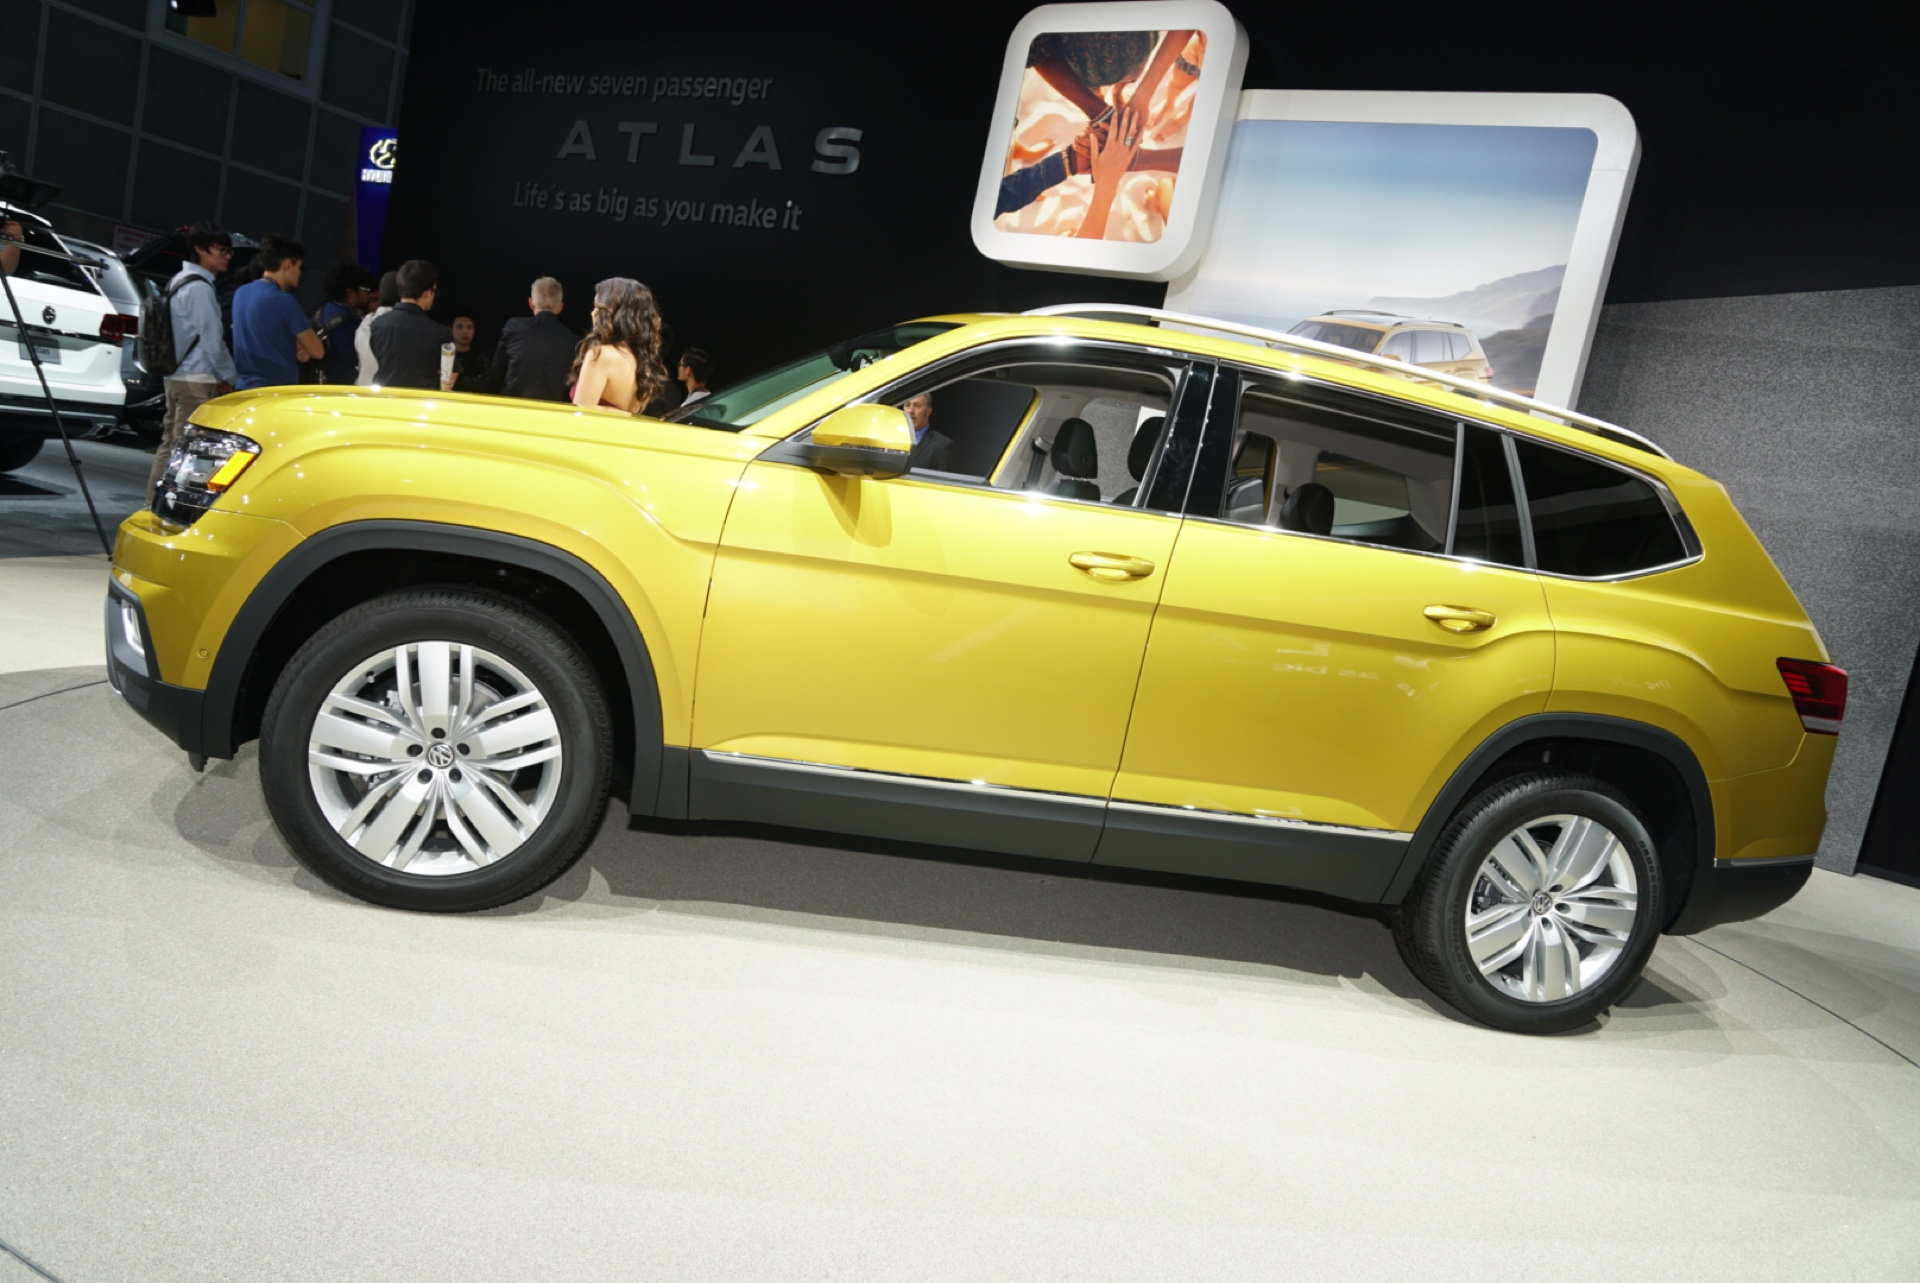 vw atlas video bmw x7 spied hyundai ioniq what 39 s new the car connection. Black Bedroom Furniture Sets. Home Design Ideas